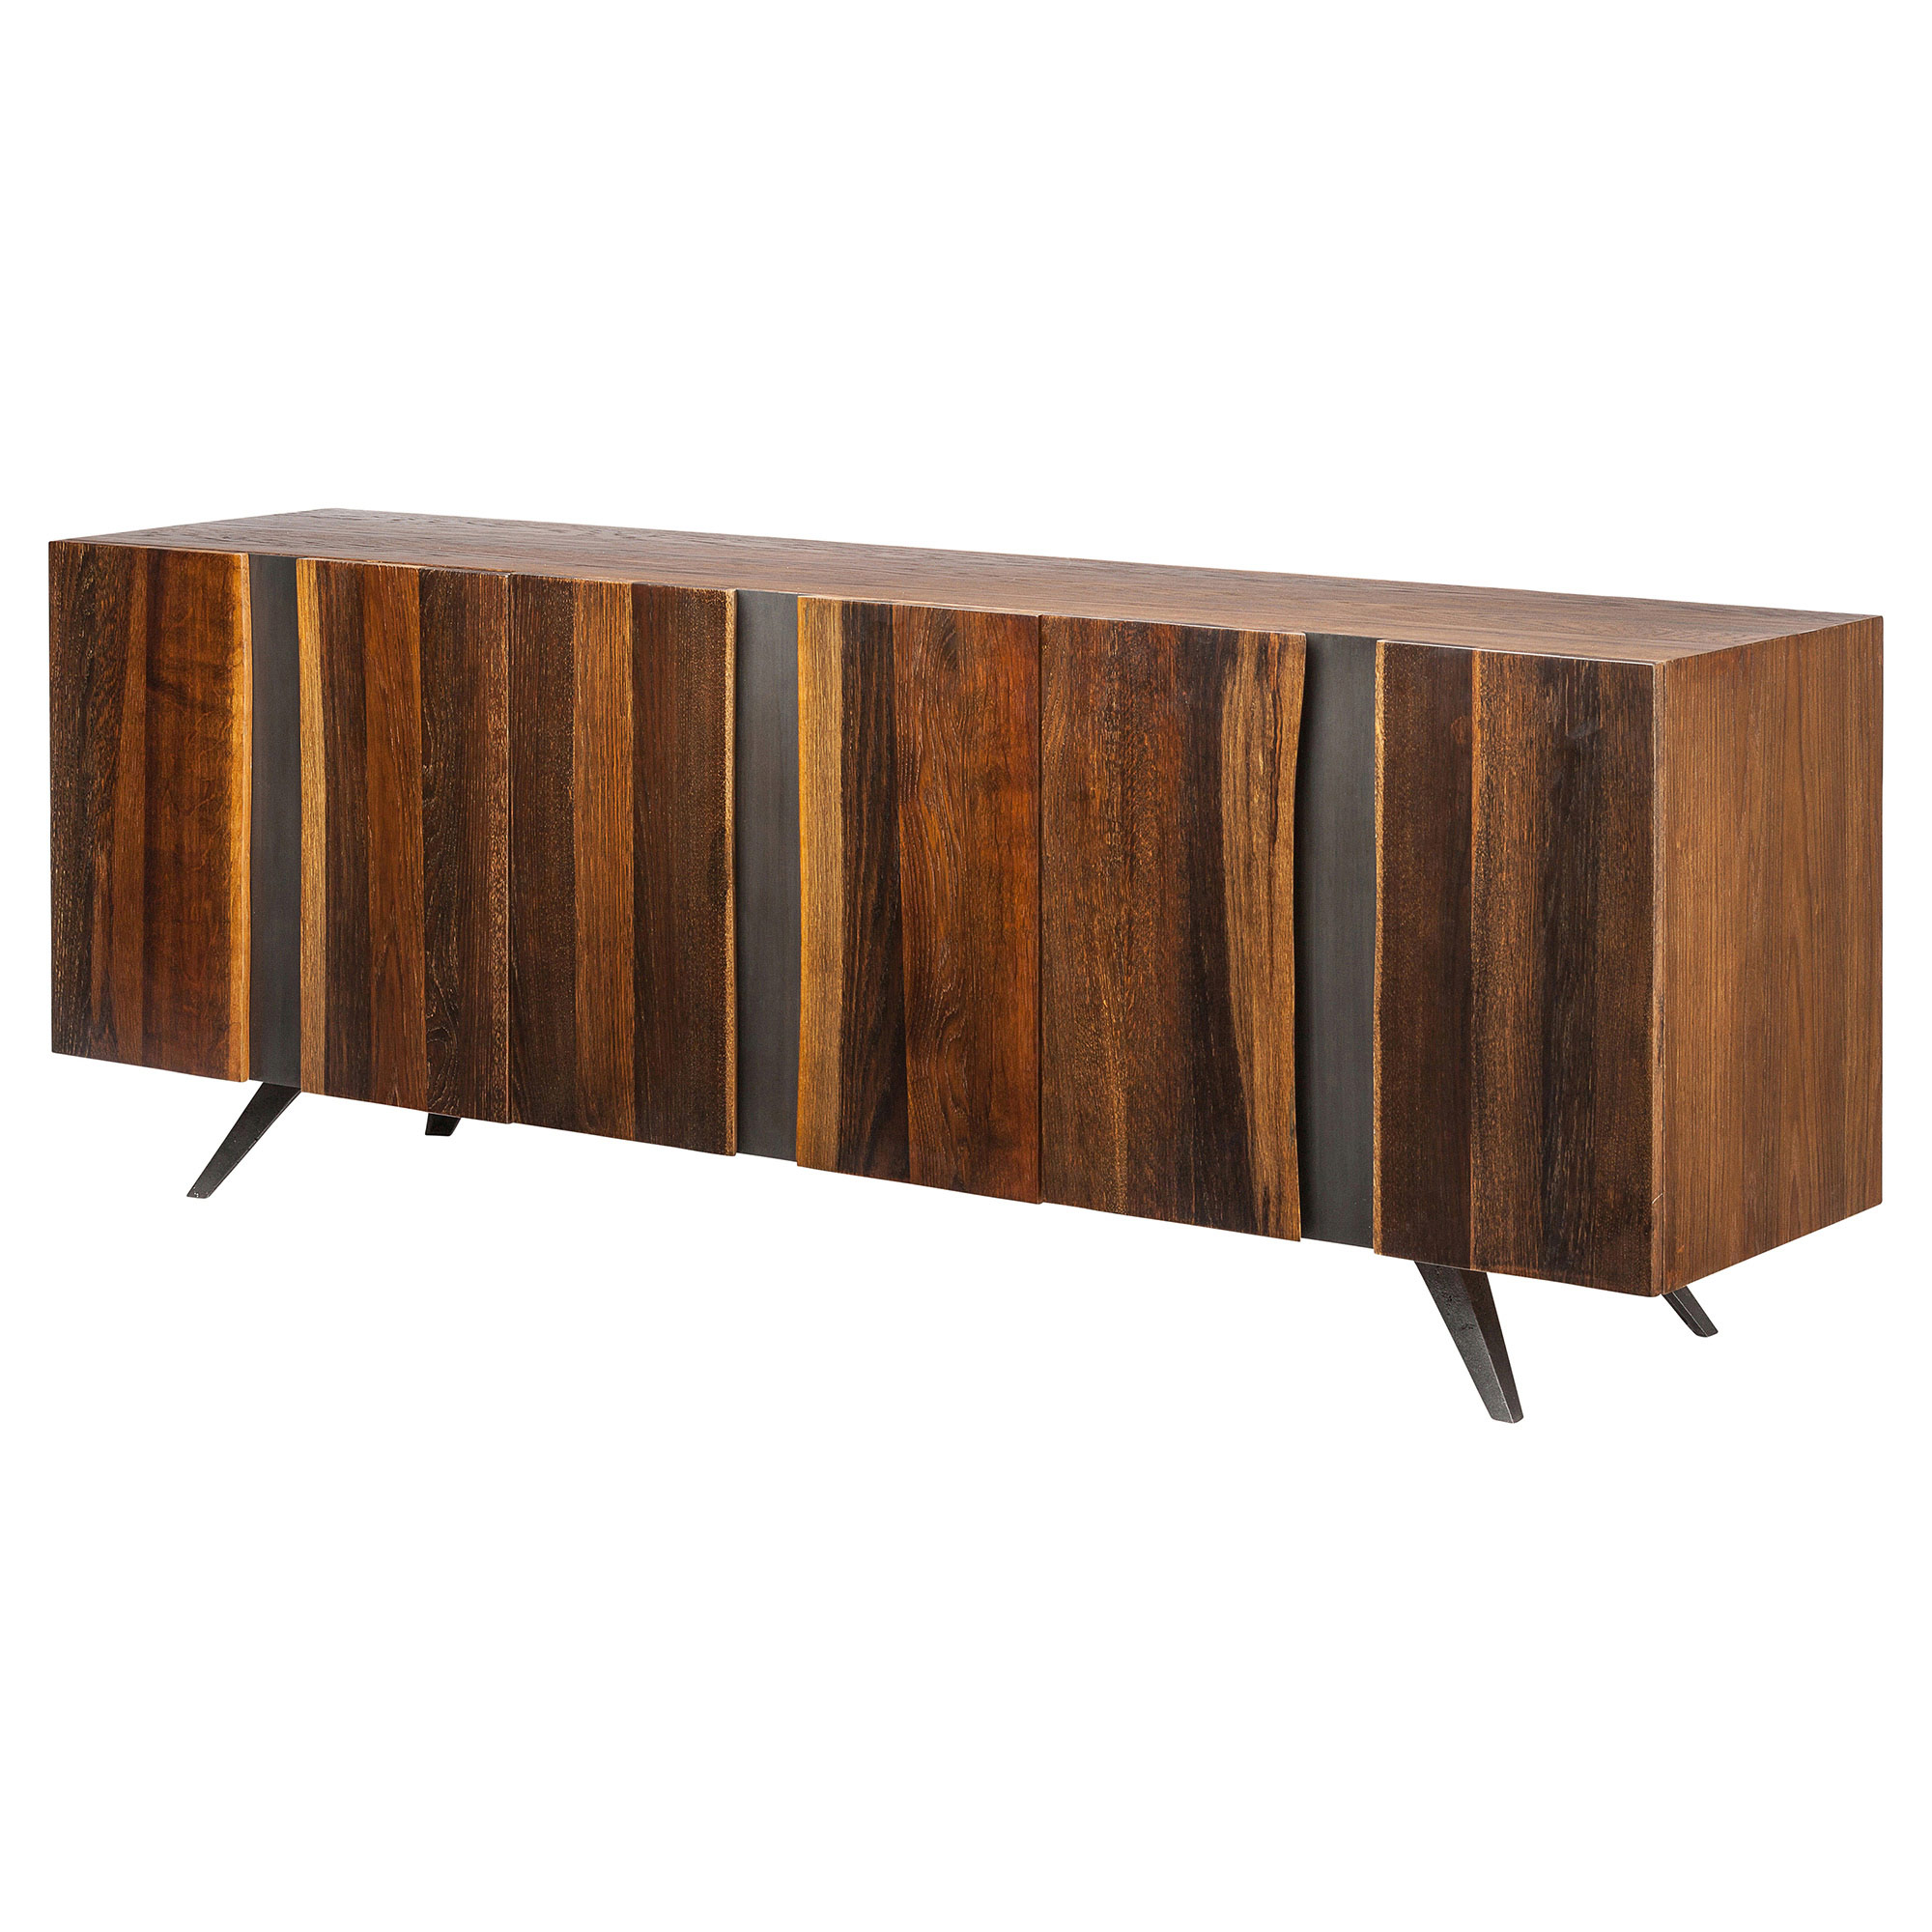 Raine Rustic Lodge Vertical Stria Wood Sideboard Buffet - 78.75W